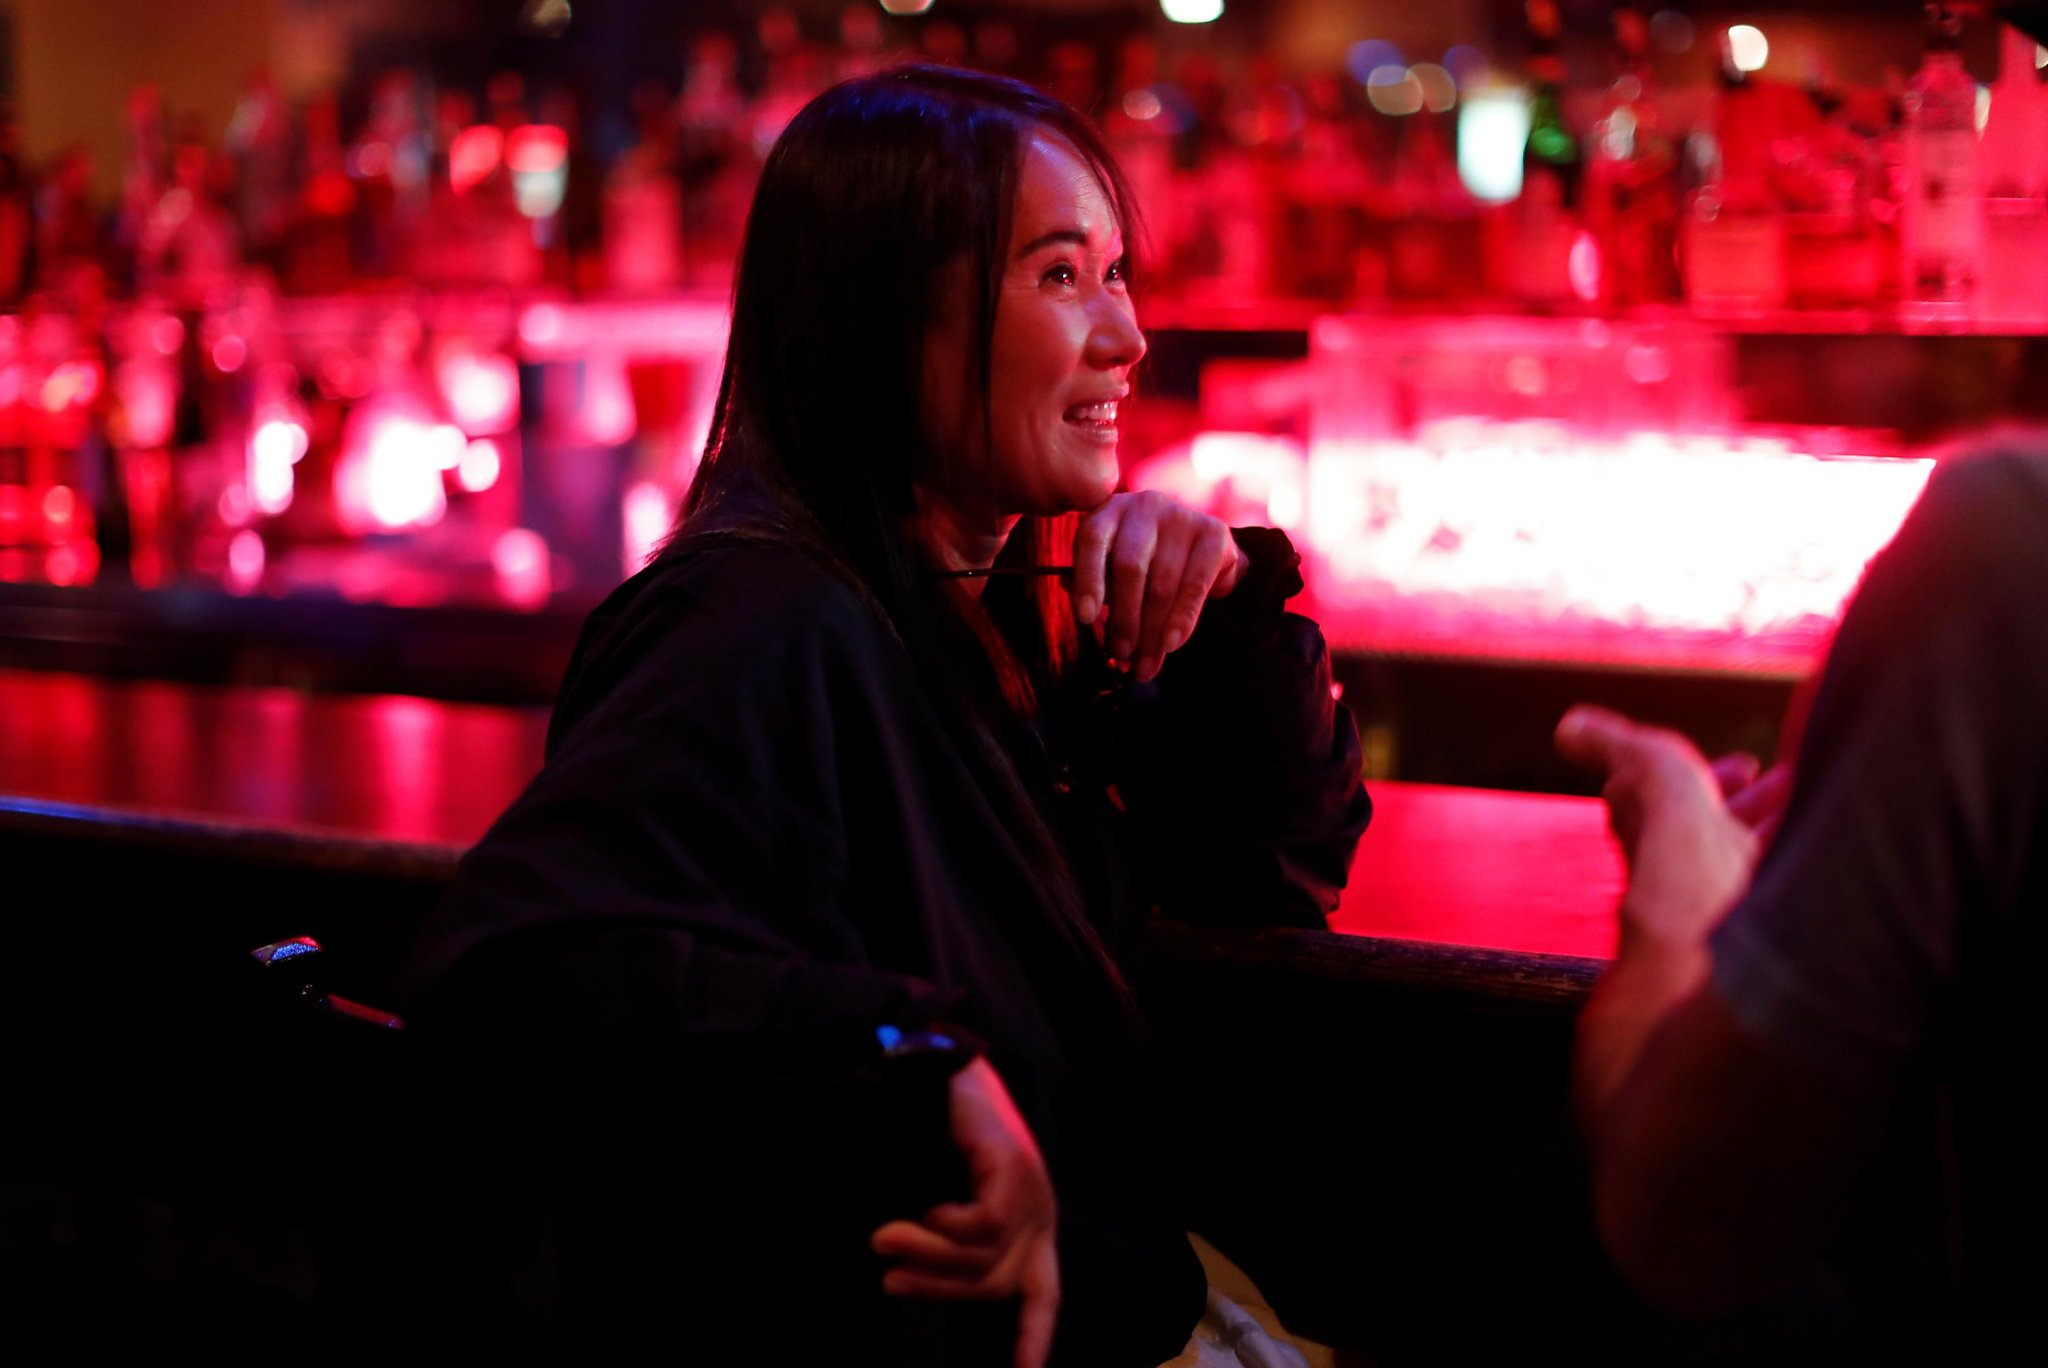 A night at Dimples, Japantown's sometimes curious, often funny